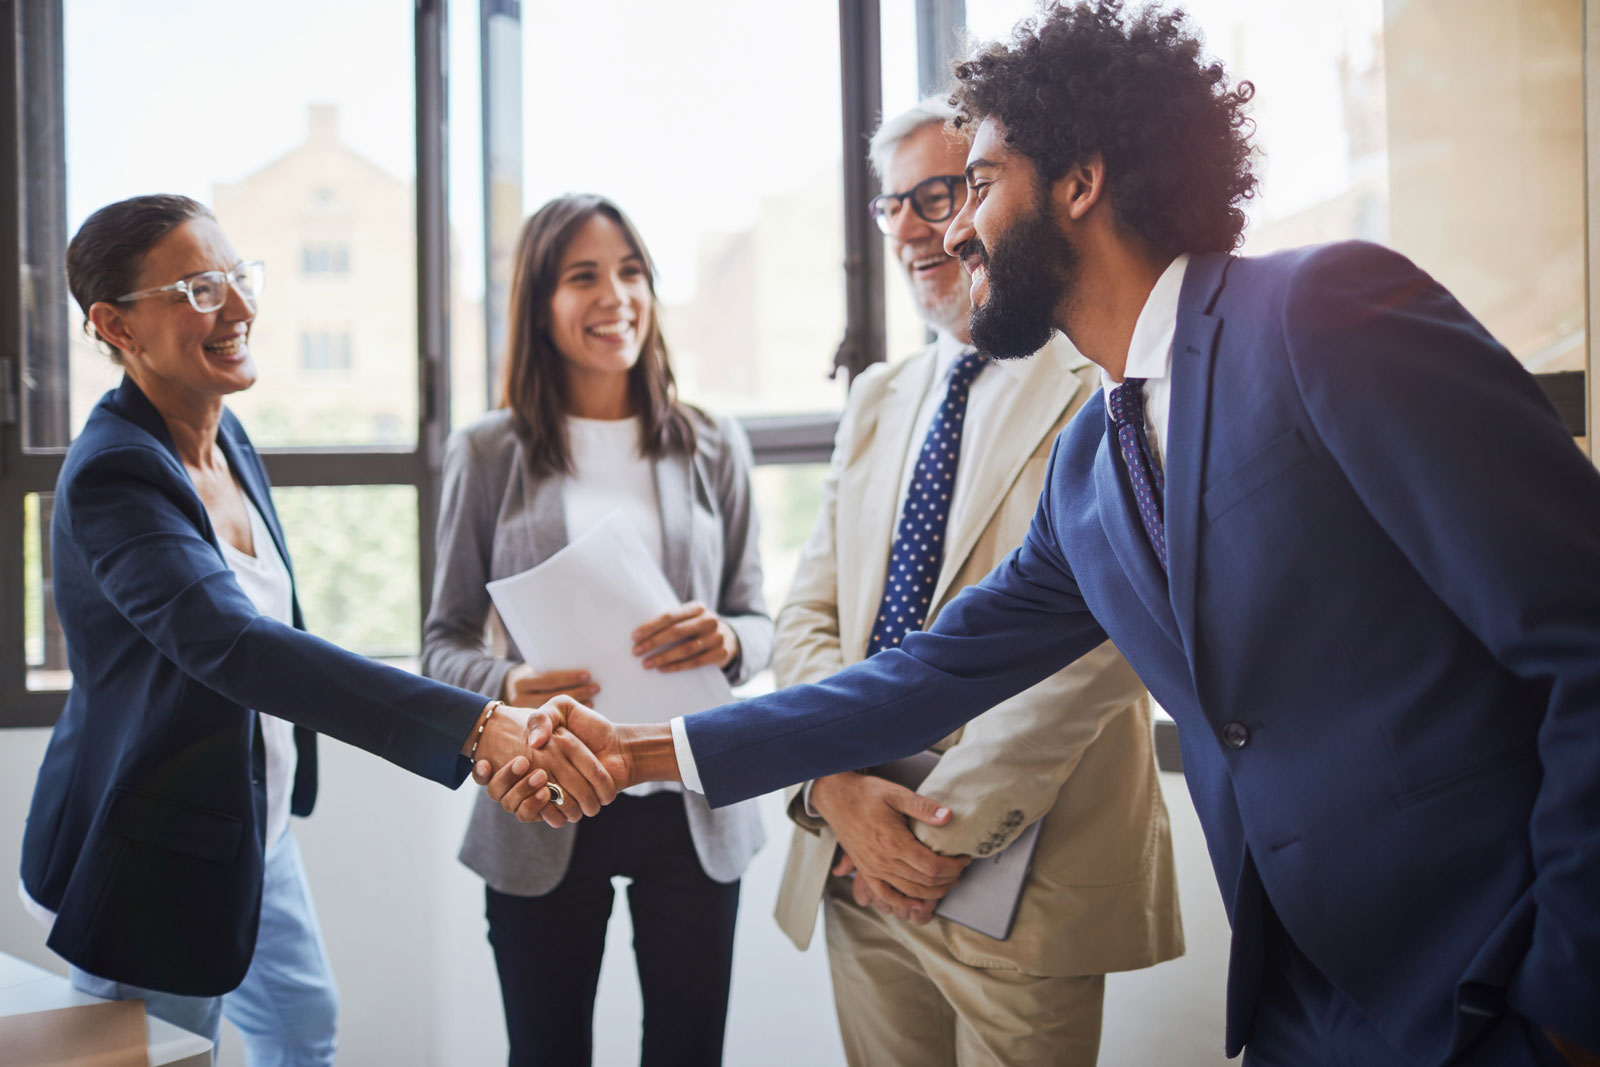 Standing business meeting where man and woman are shaking hands